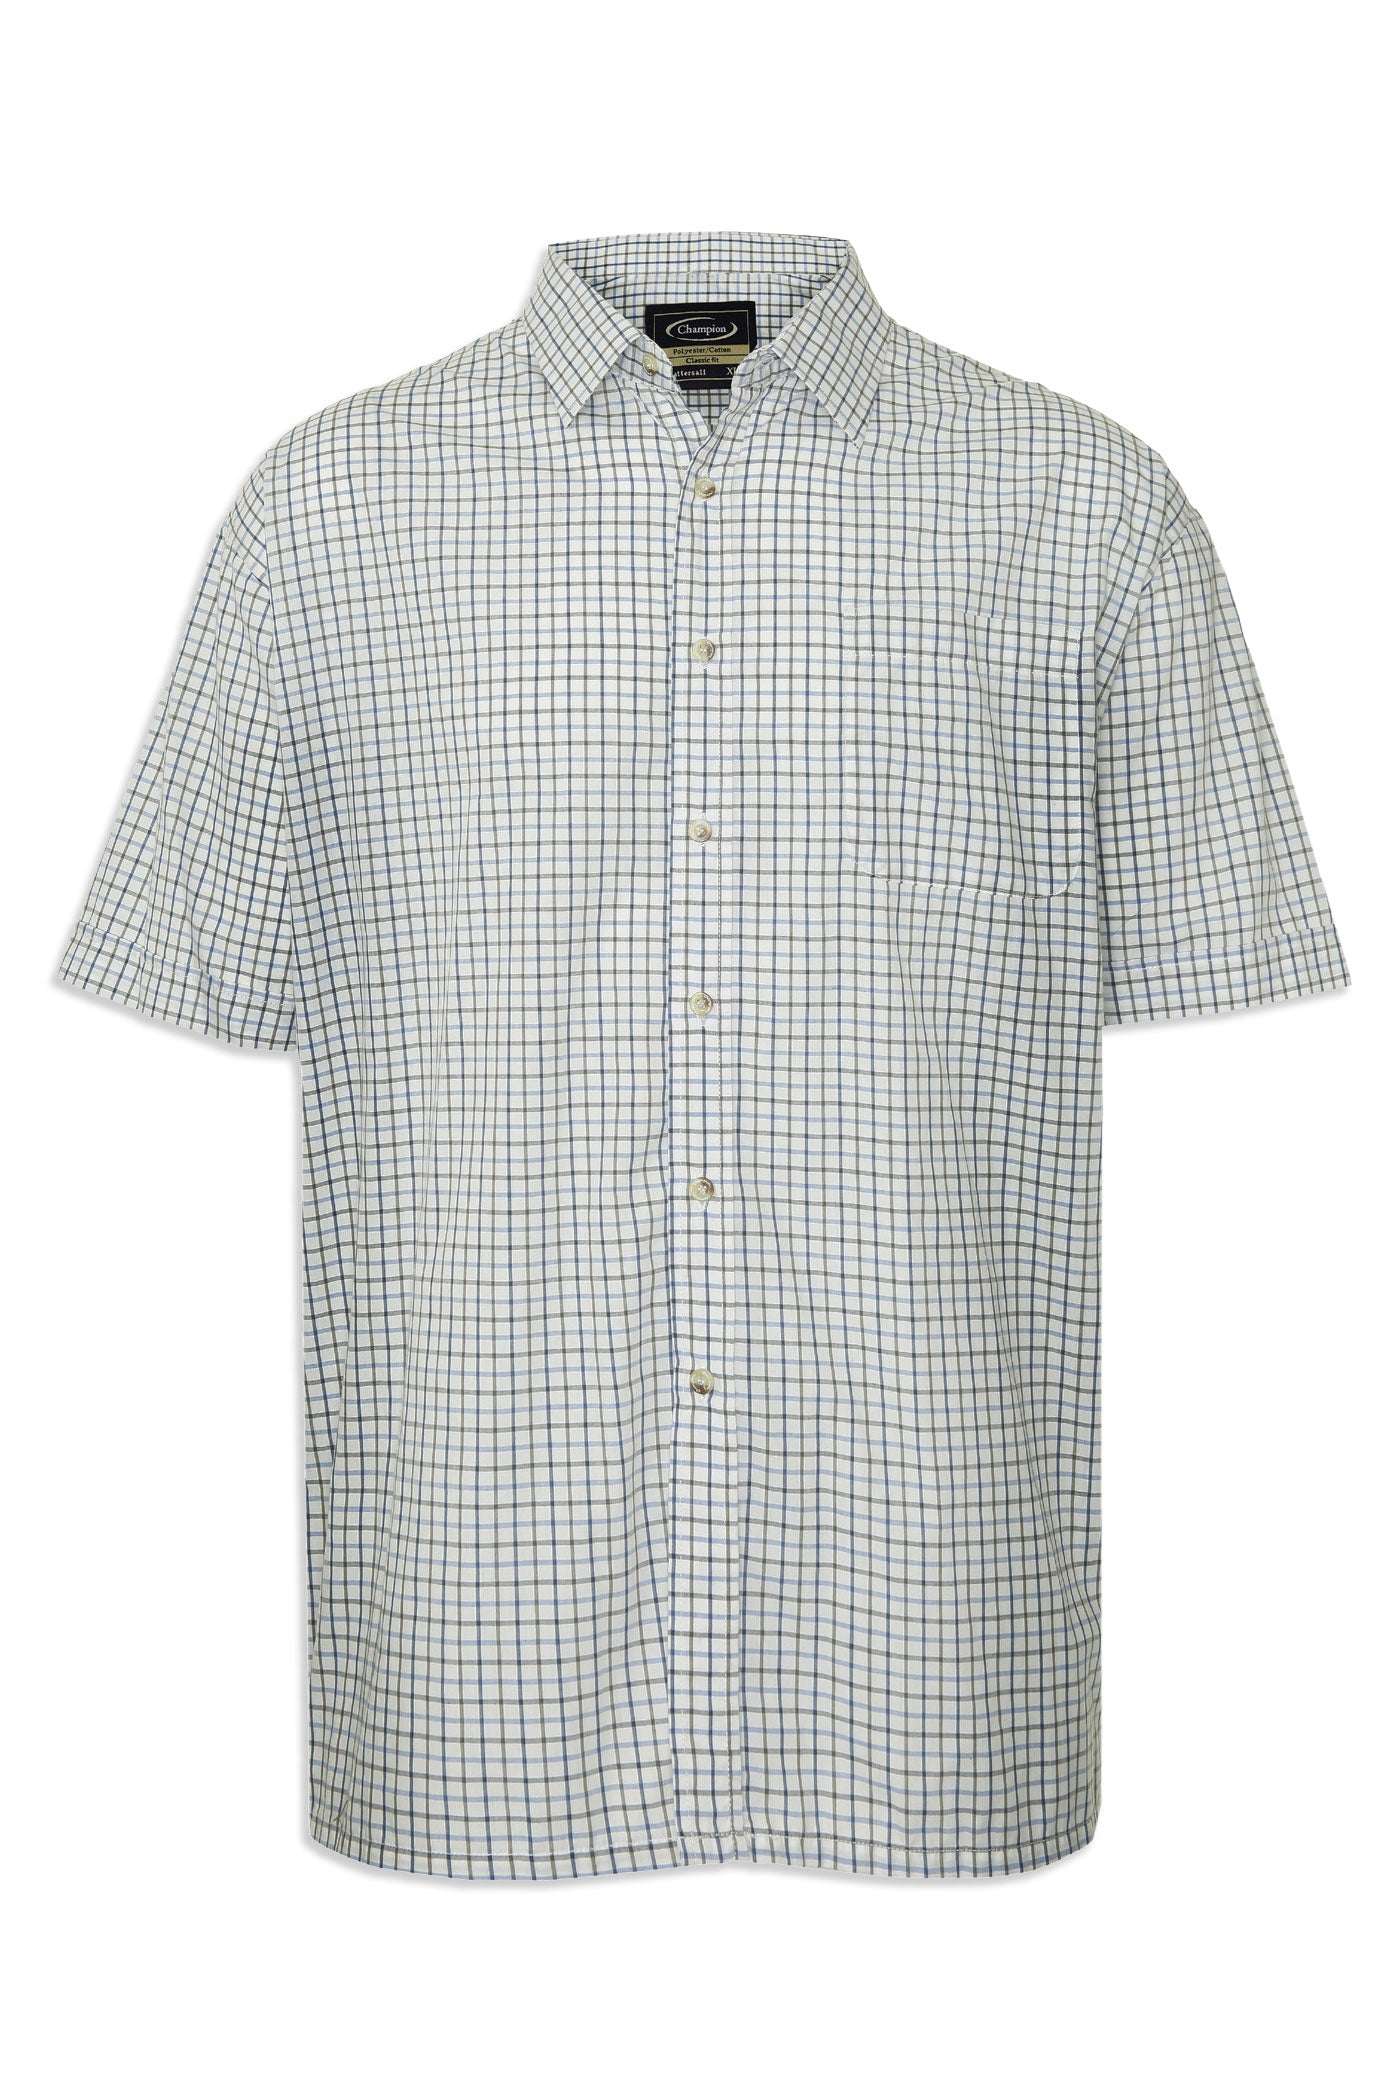 in blue check Champion summer Tattersall, the classic country tattersall check shirt with short sleeves, ideal for summer